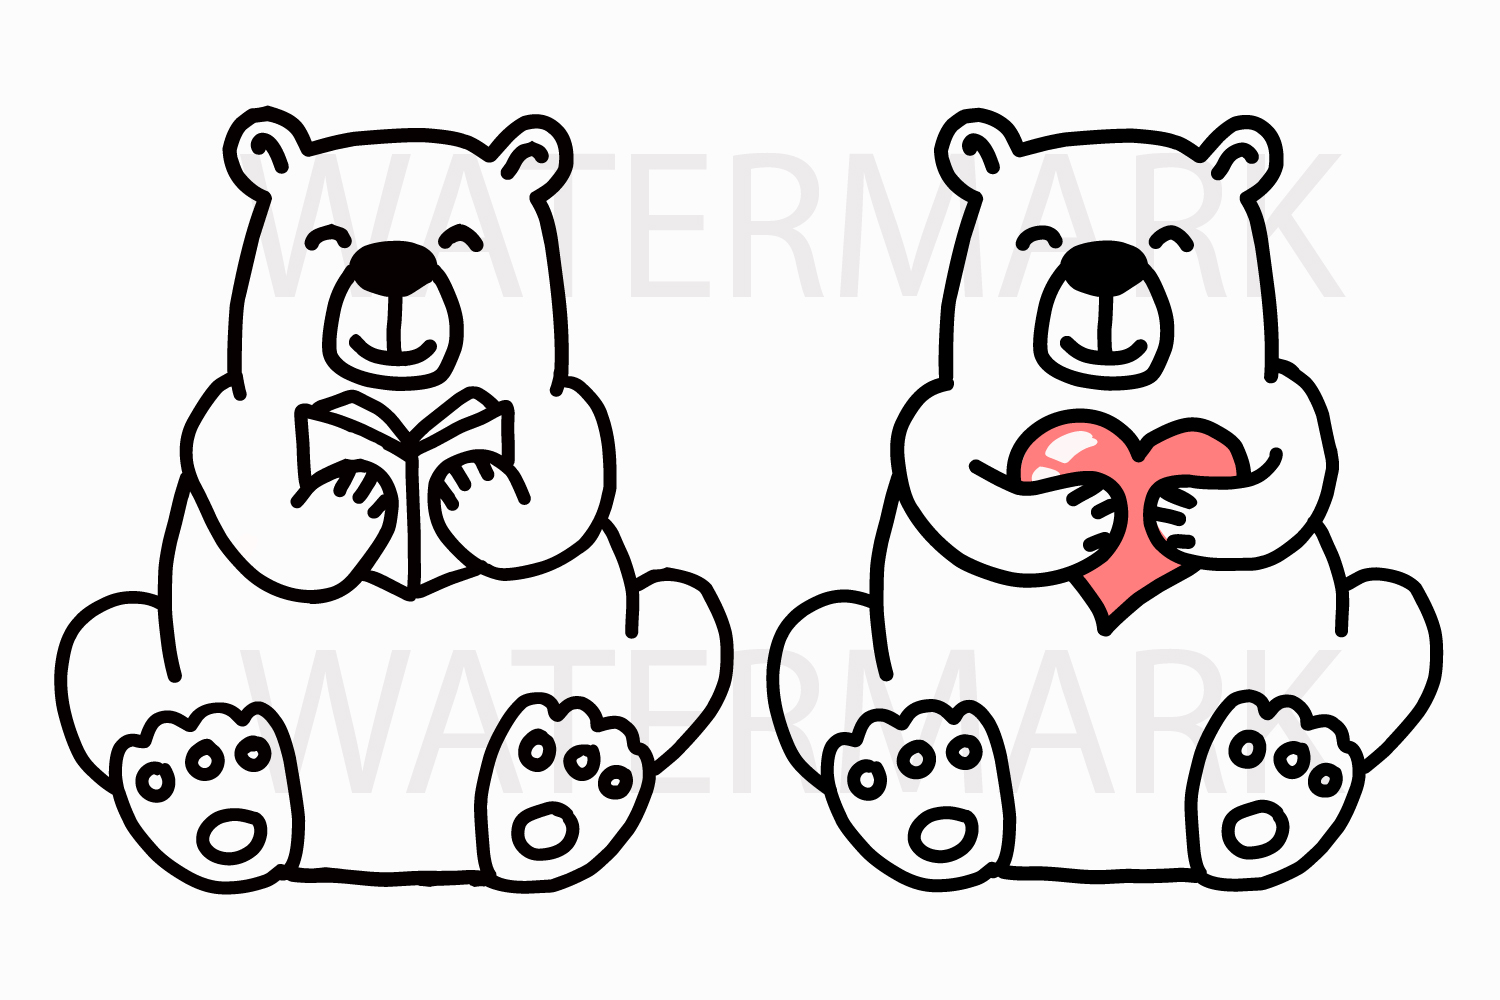 Bear Reading Book with Bear Holding a Heart - SVG/JPG/PNG example image 1